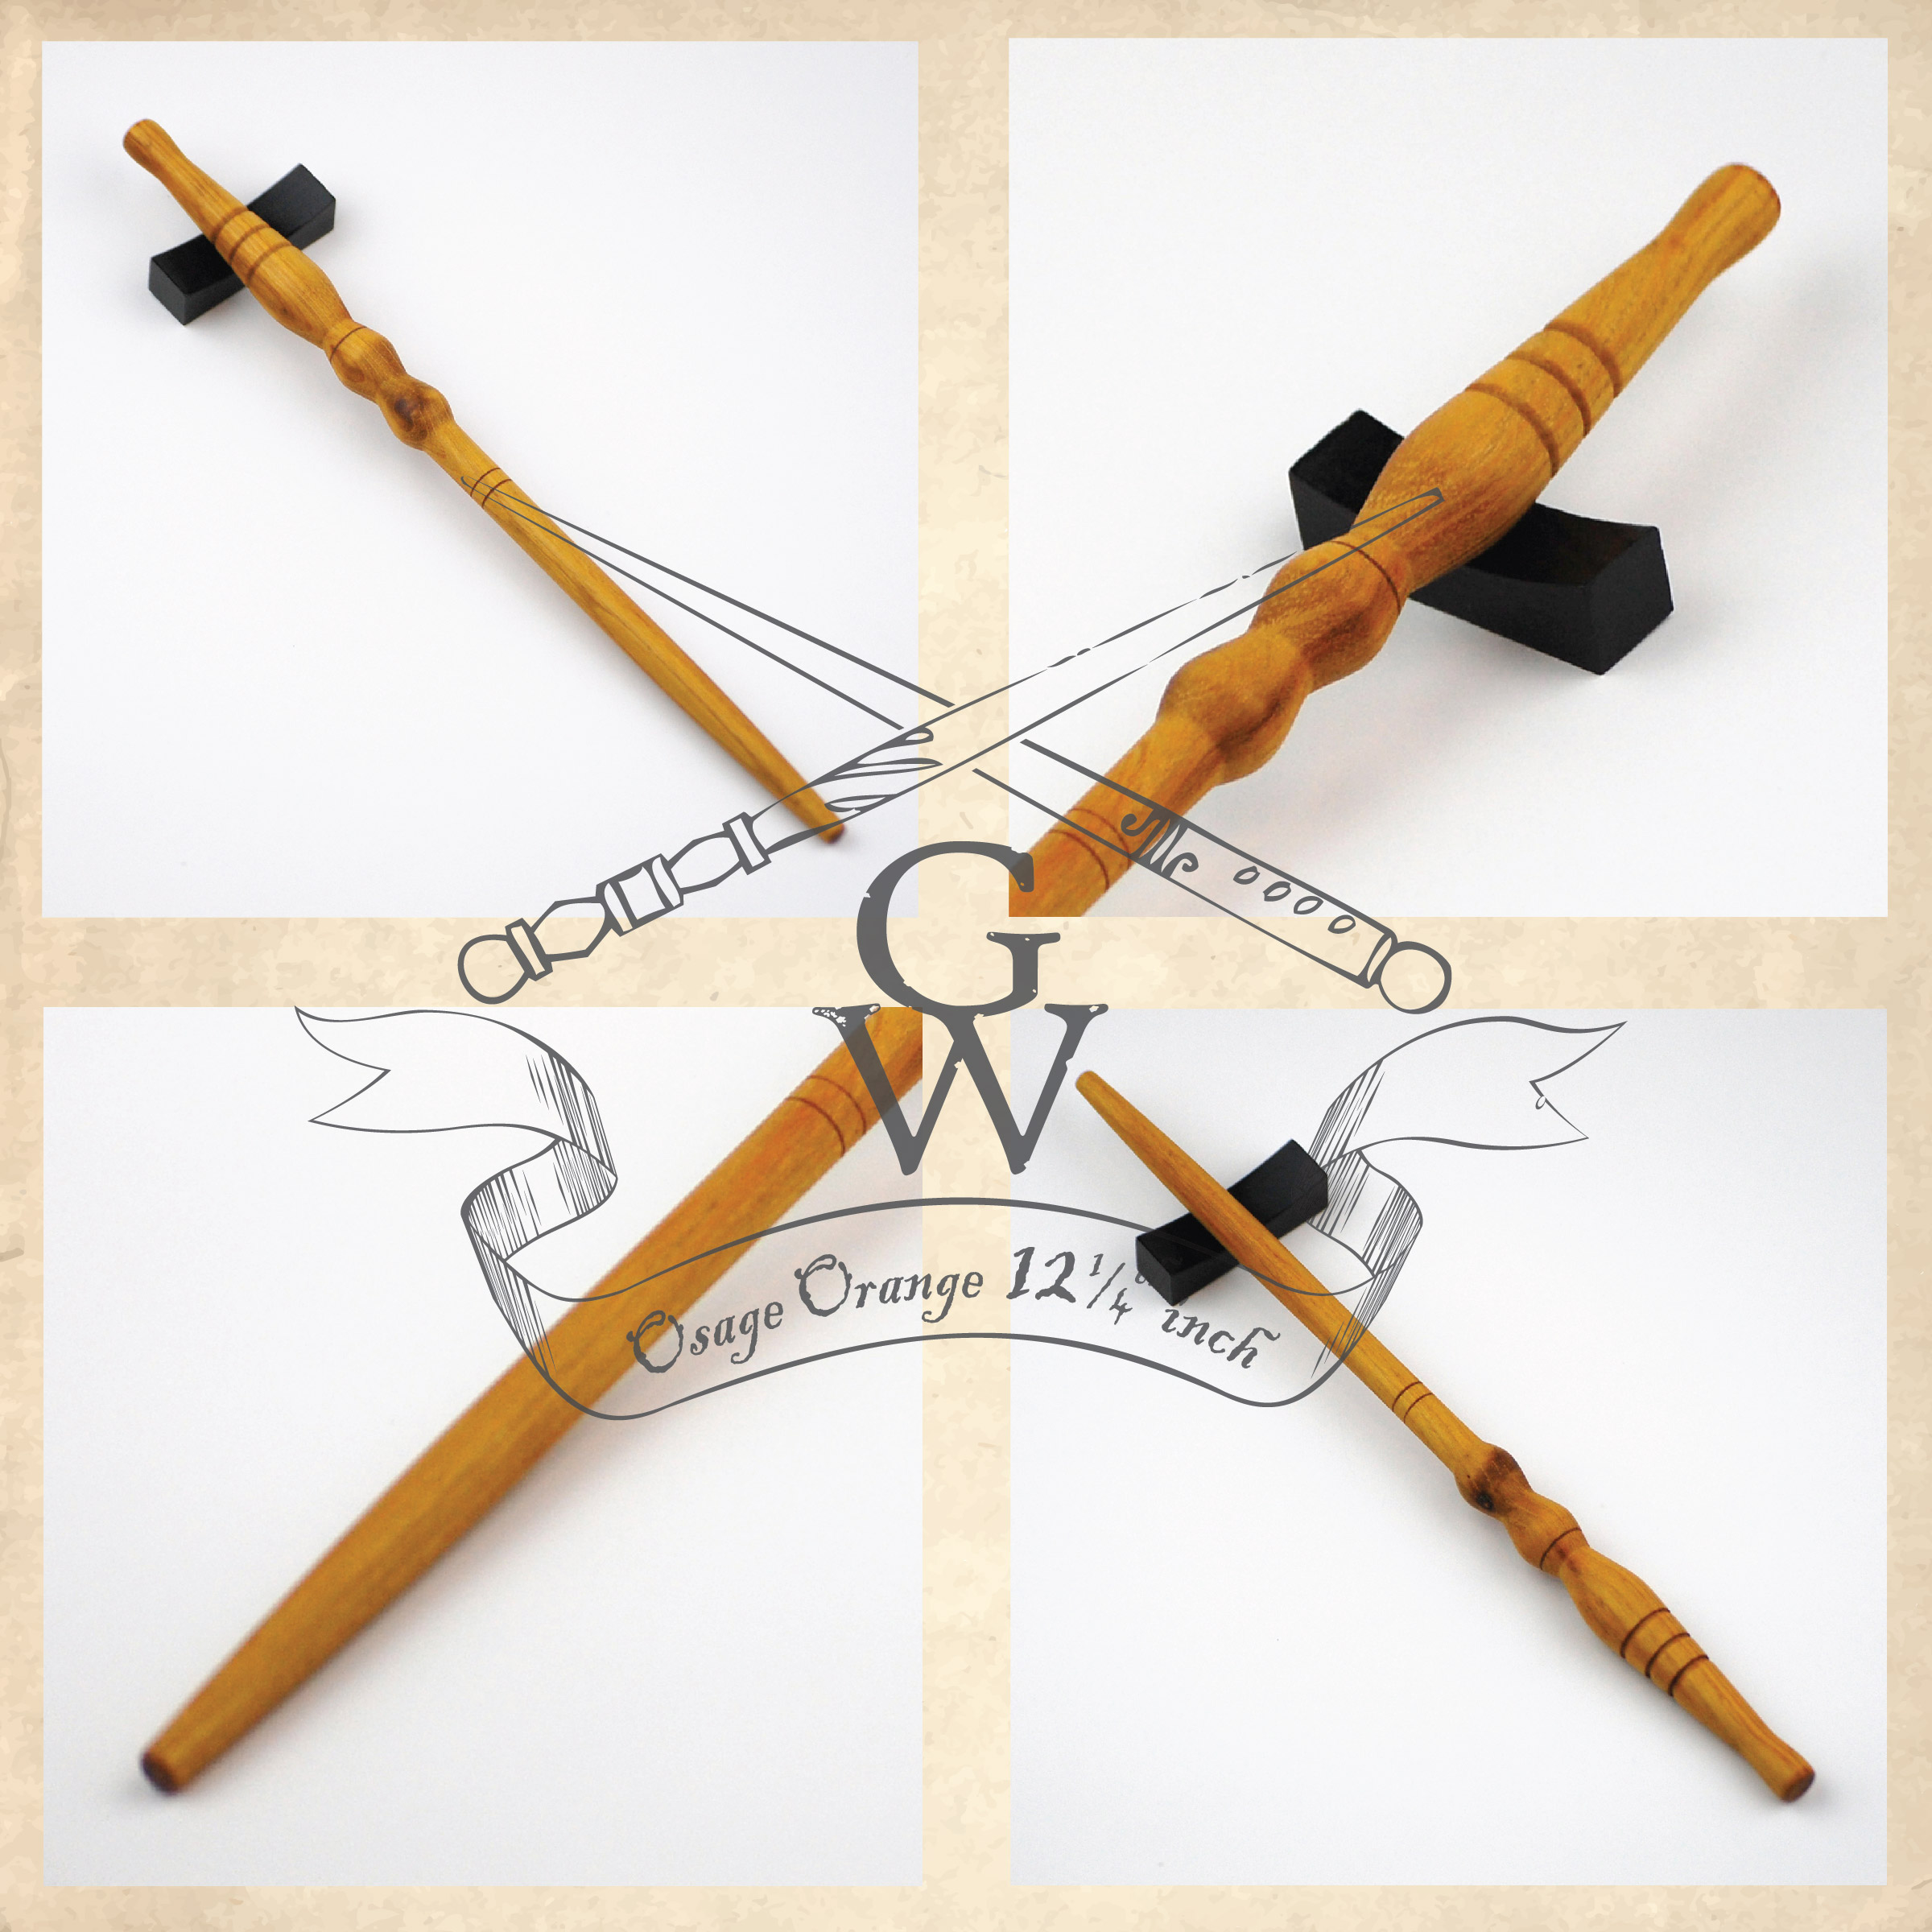 Osage Orange wand 10 1/8 inch · GipsonWands · Online Store ...